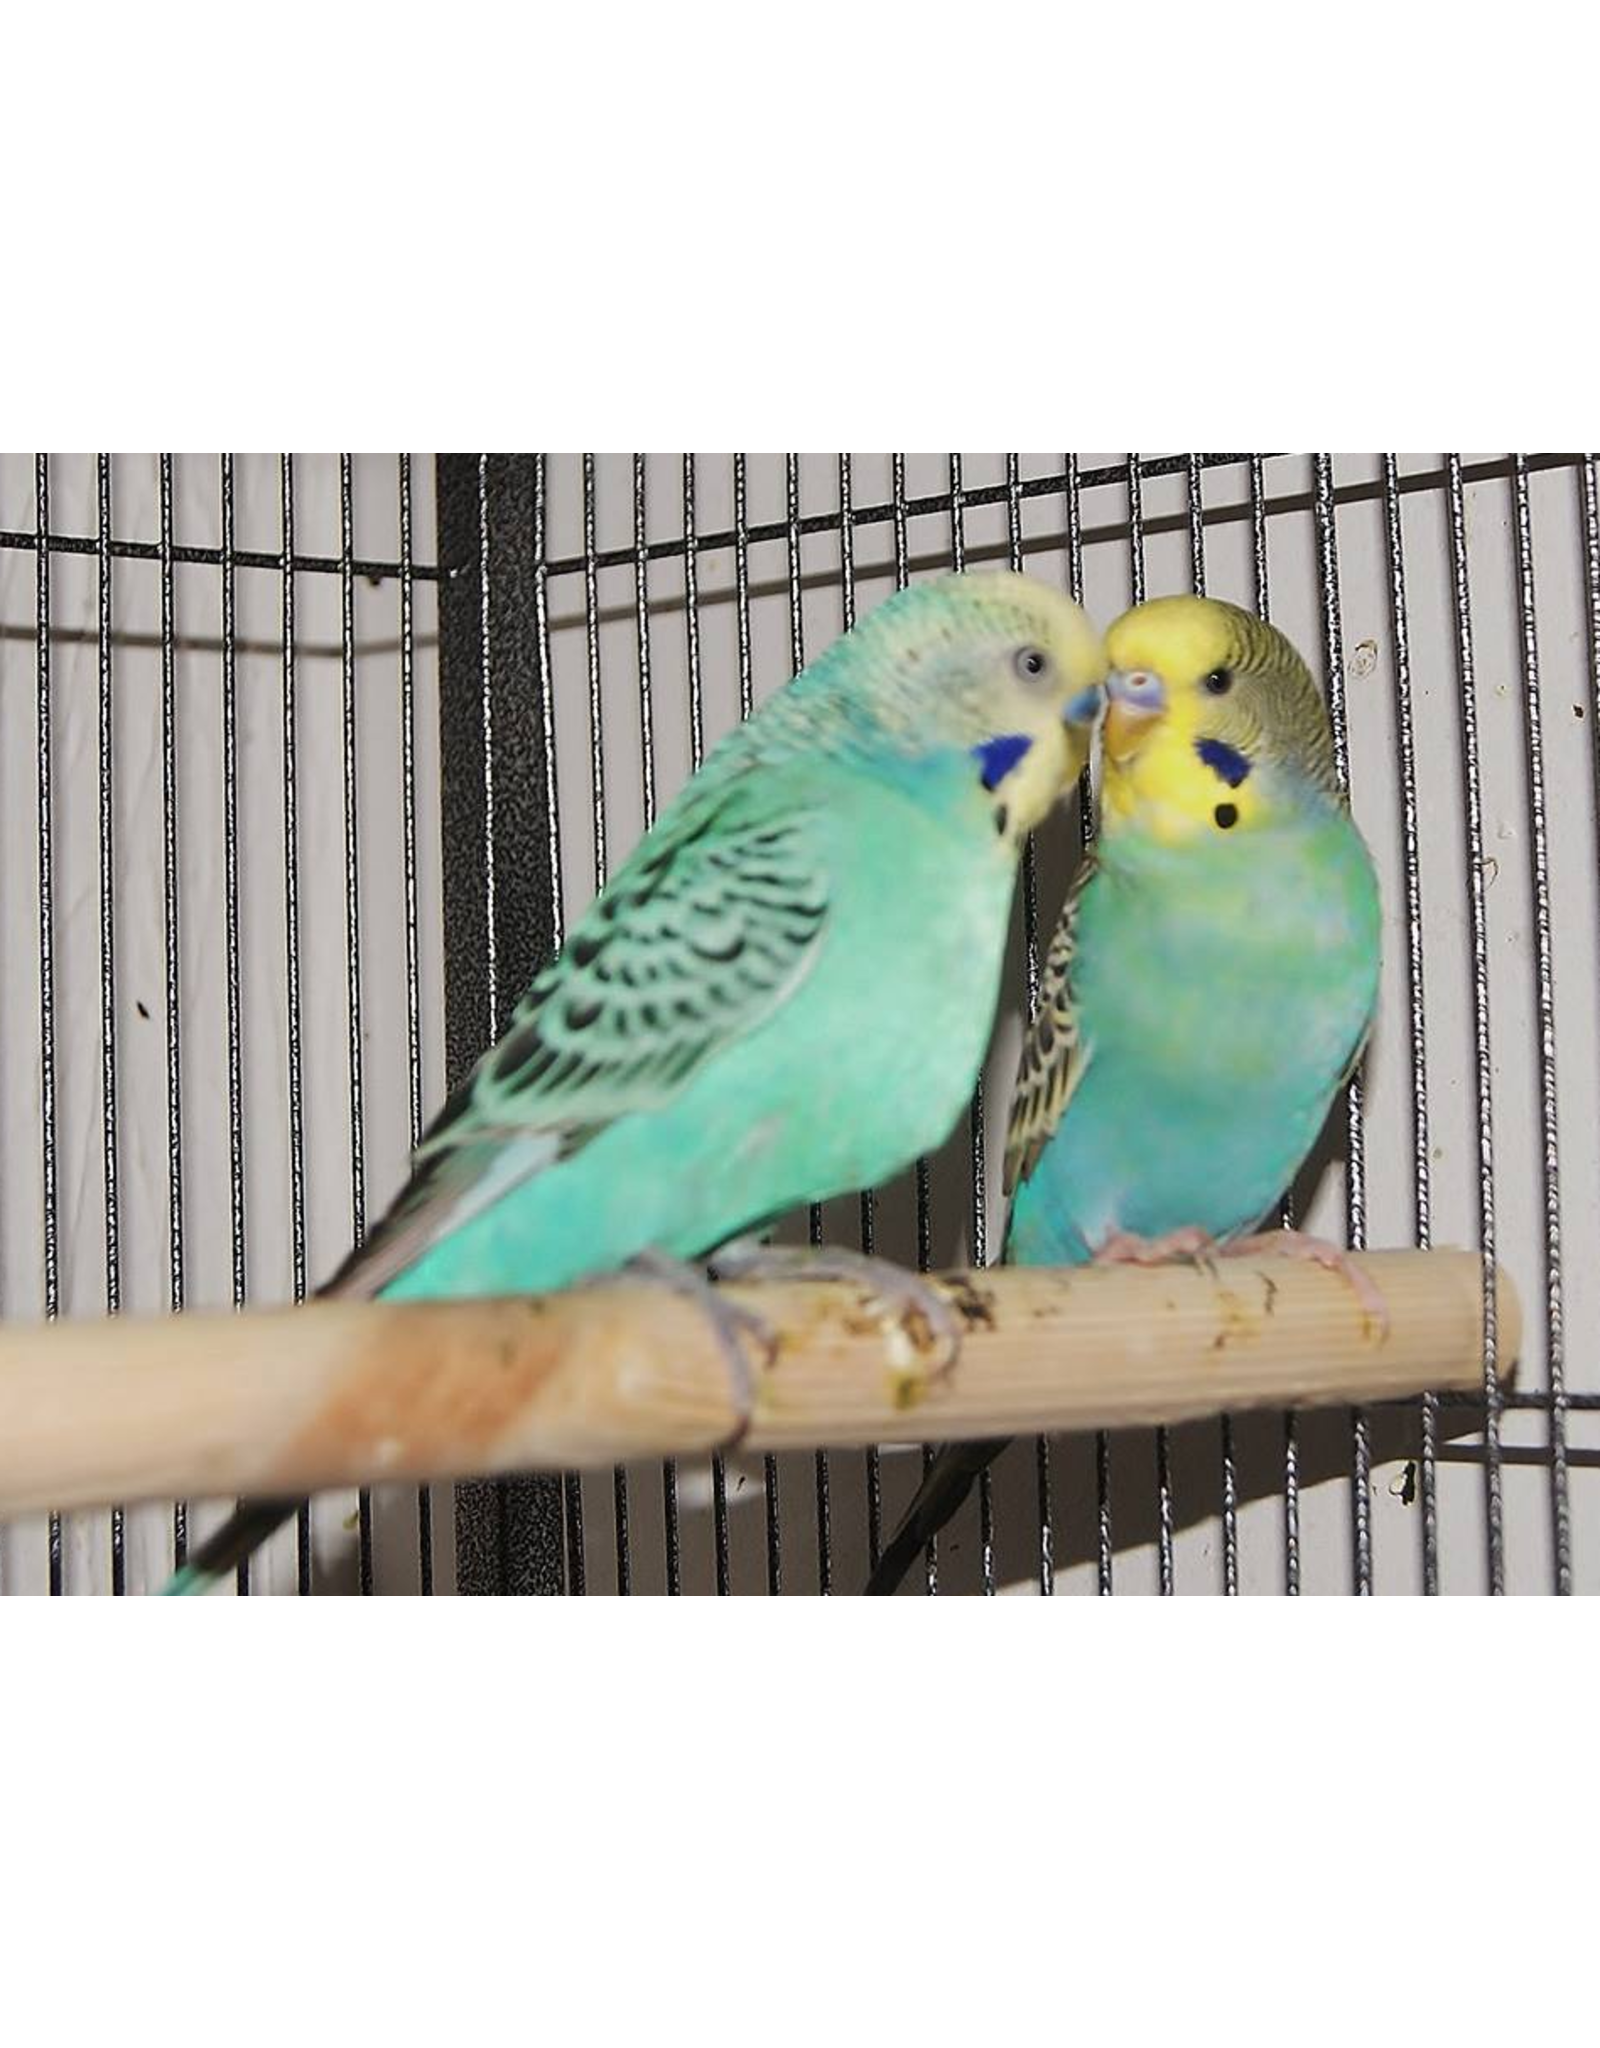 Angell Pets Bird Boarding Per Cage (Up to 4 birds per cage)